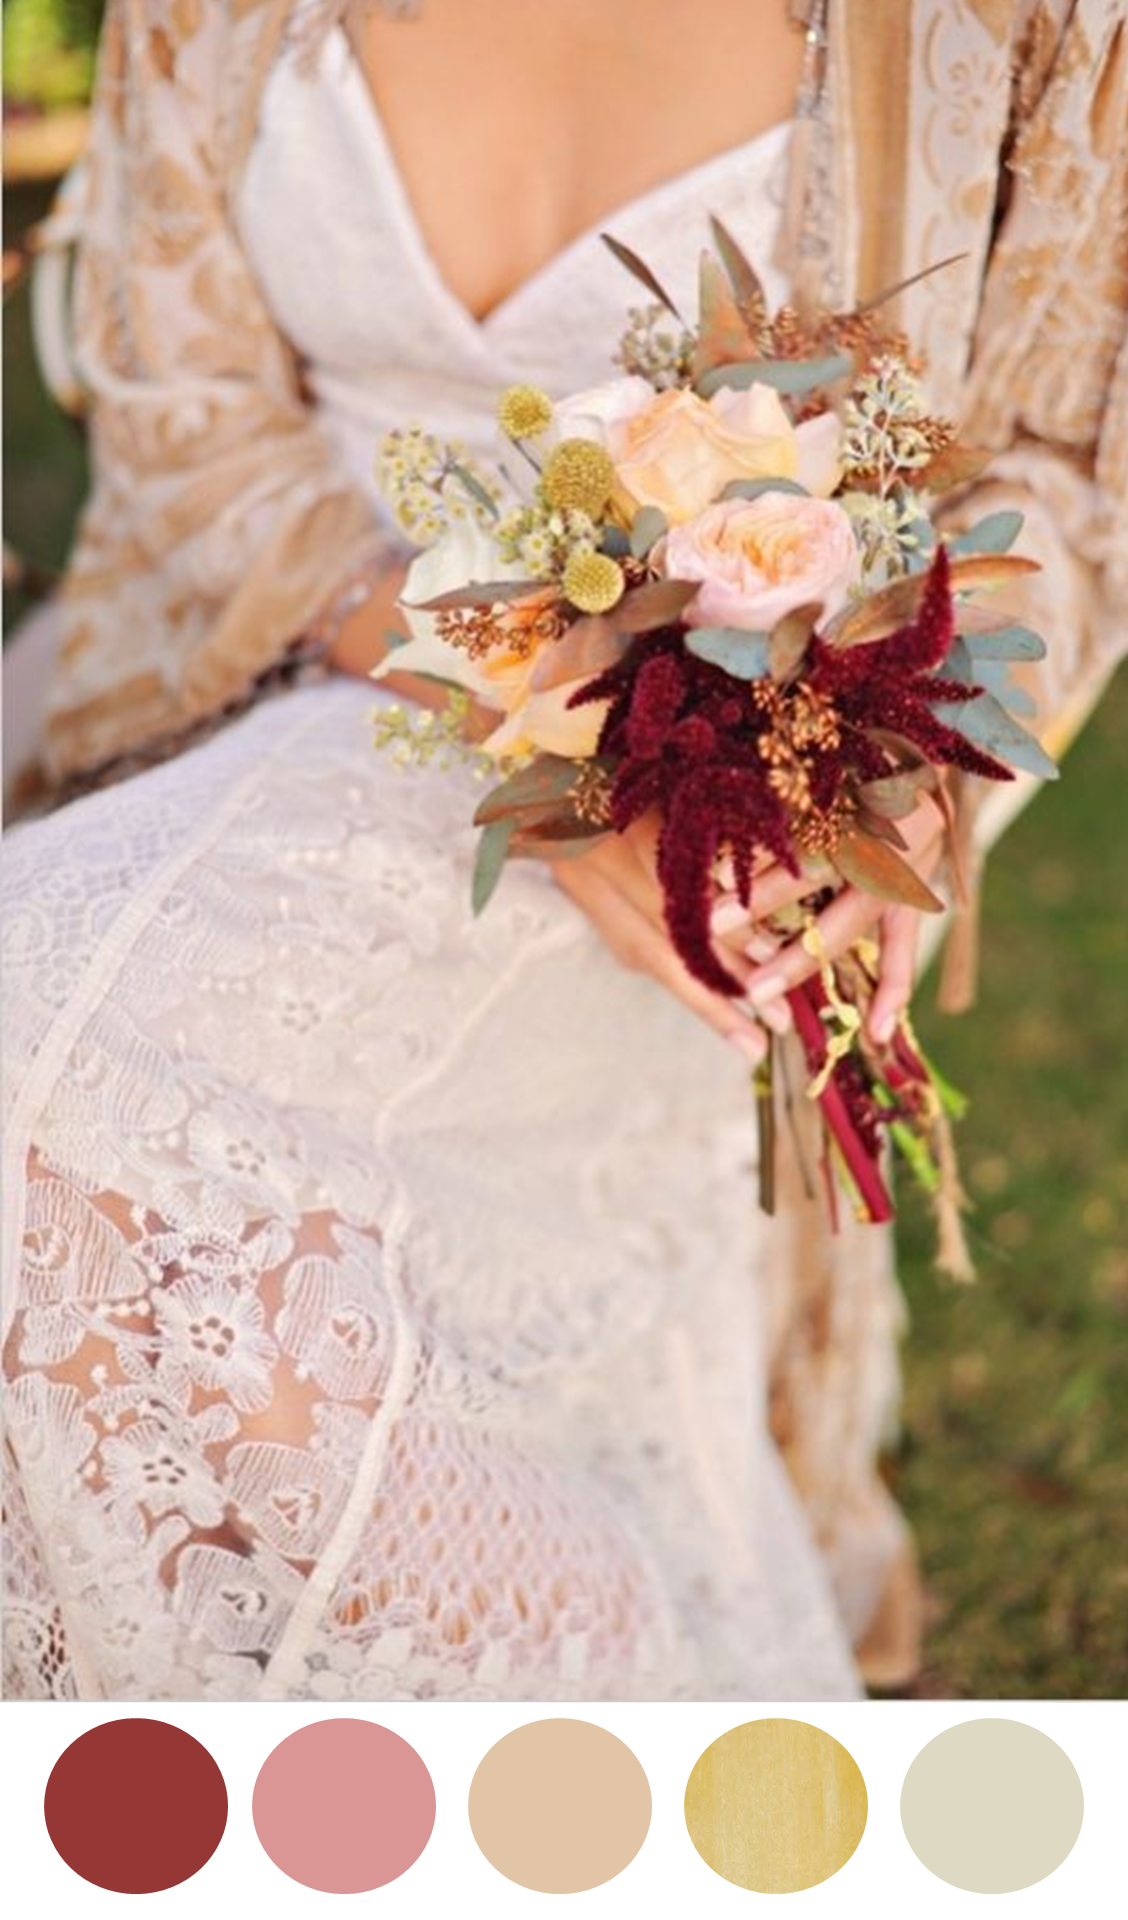 10 Colorful Bouquets for Your Wedding Day! | Farbkonzept | Pinterest ...